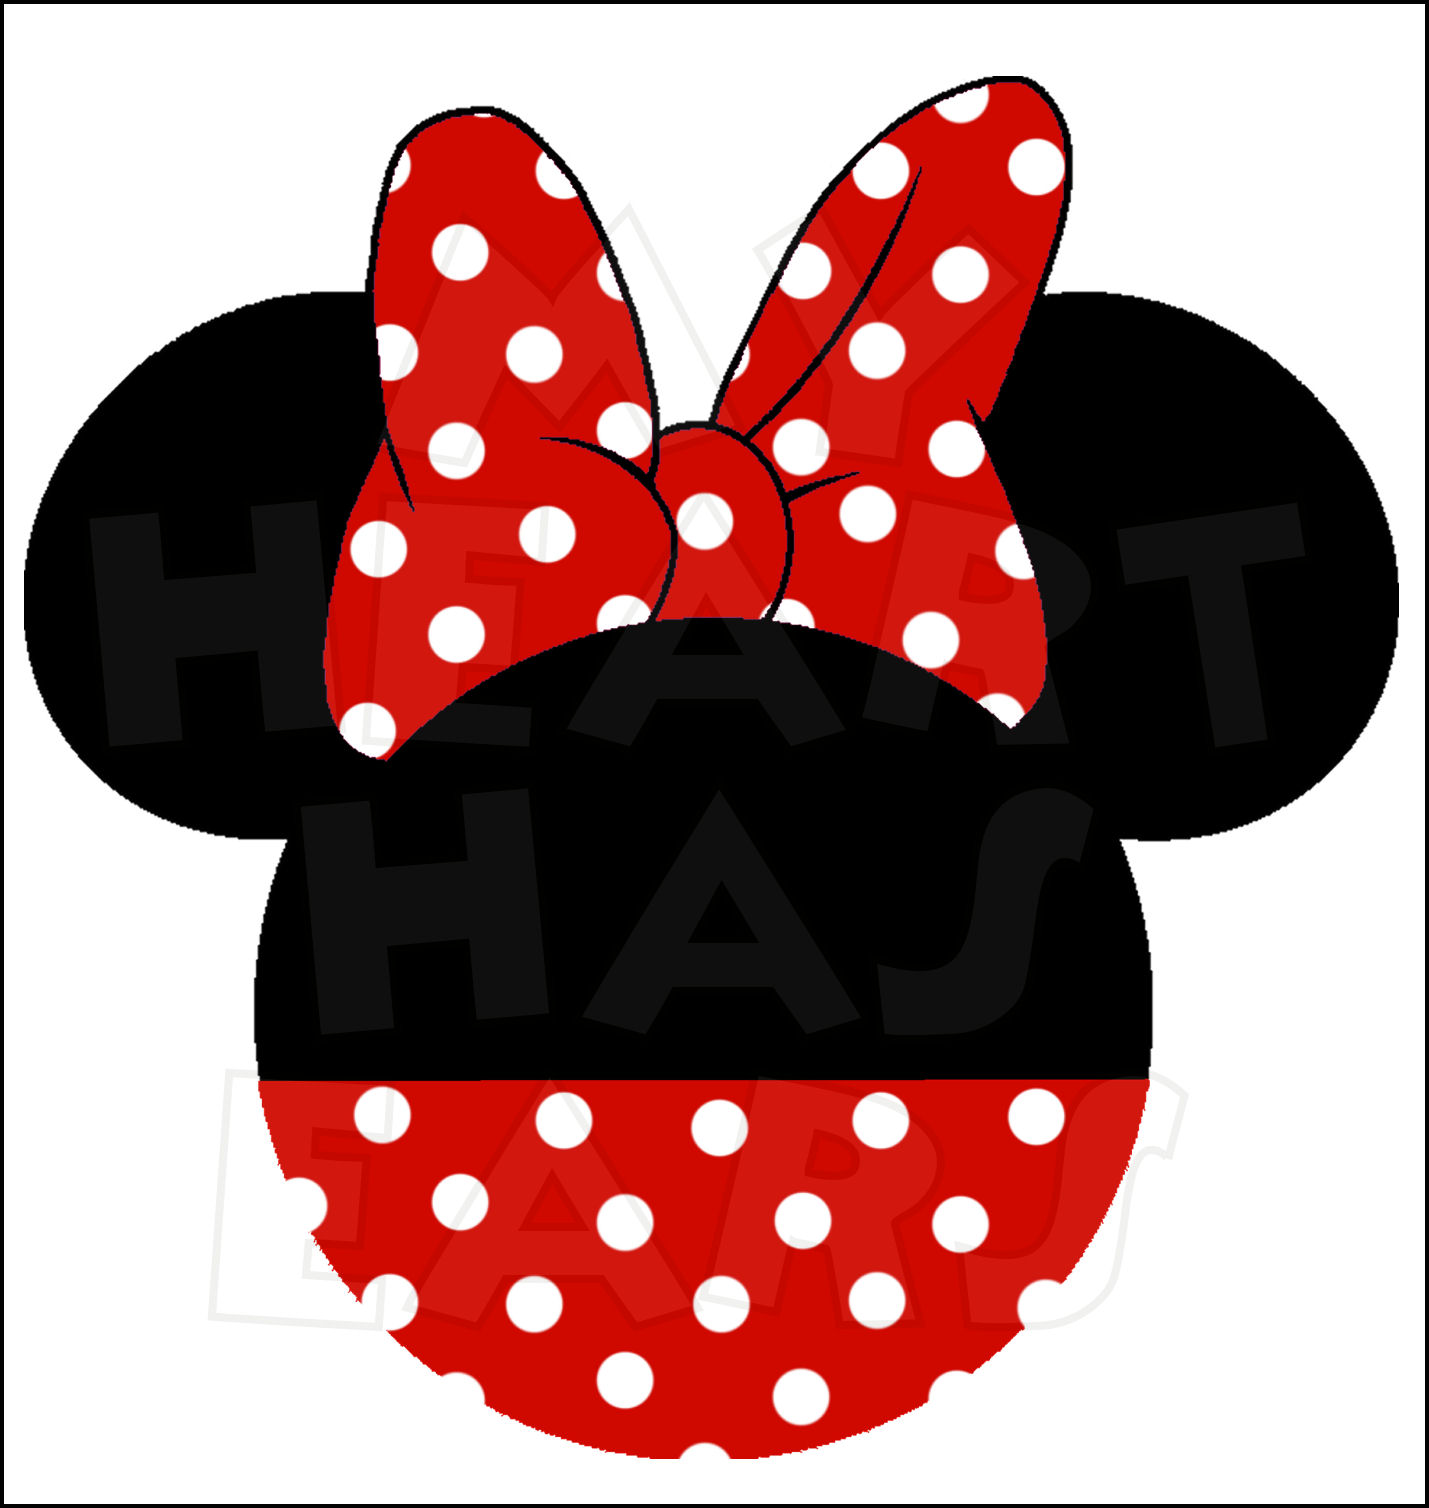 Minnie mouse head outline clipart picture freeuse download Free Minnie Mouse Head Outline, Download Free Clip Art, Free Clip ... picture freeuse download